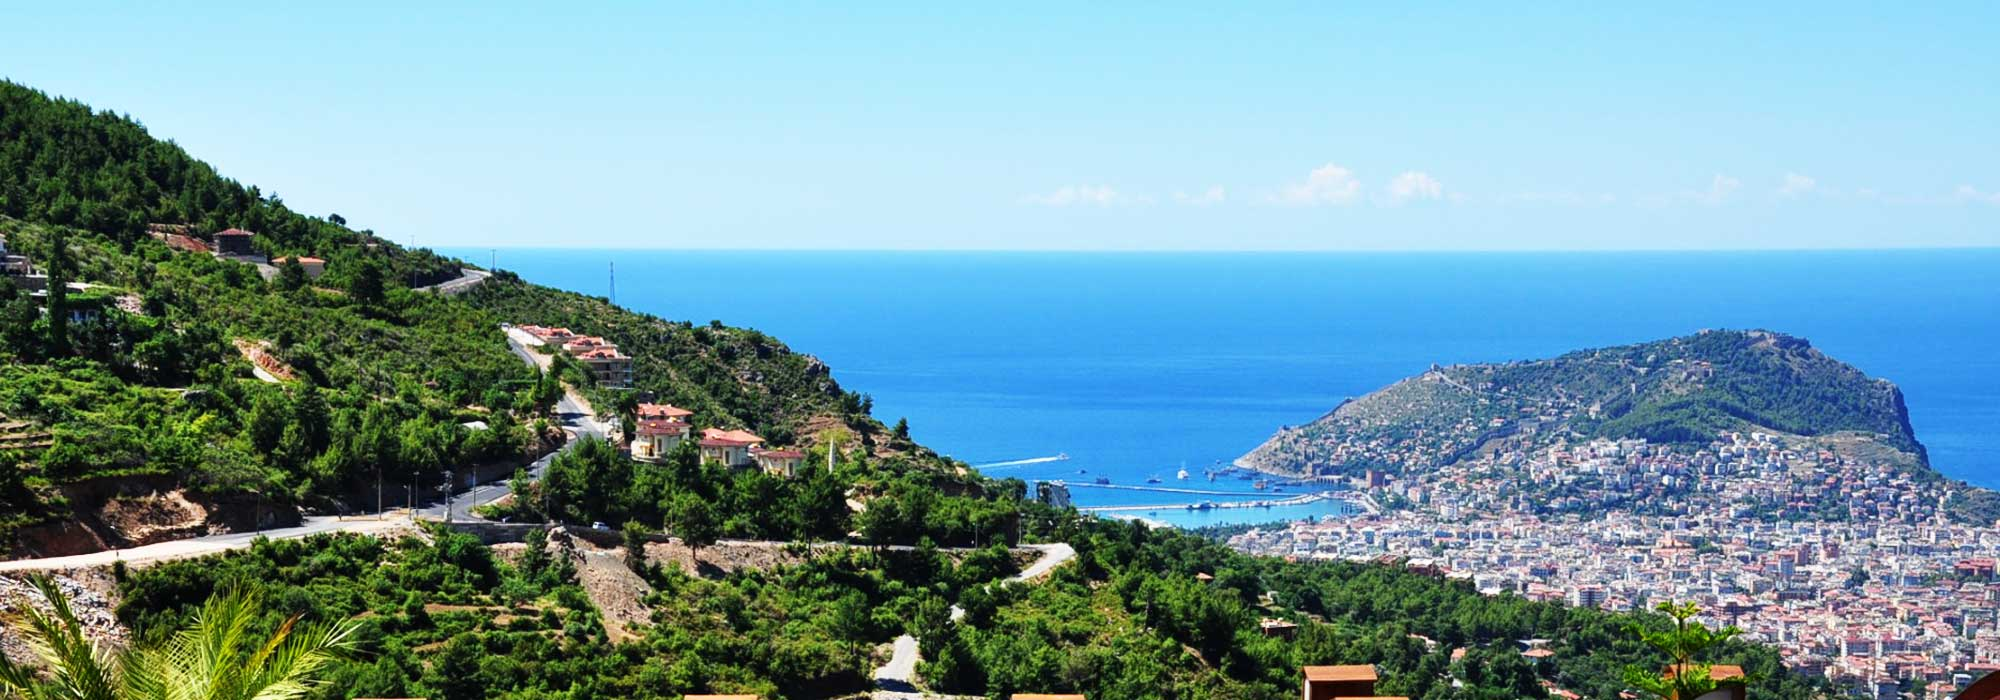 159000 Euro New Private Villa Home For Sale in Alanya Tepe Bektas